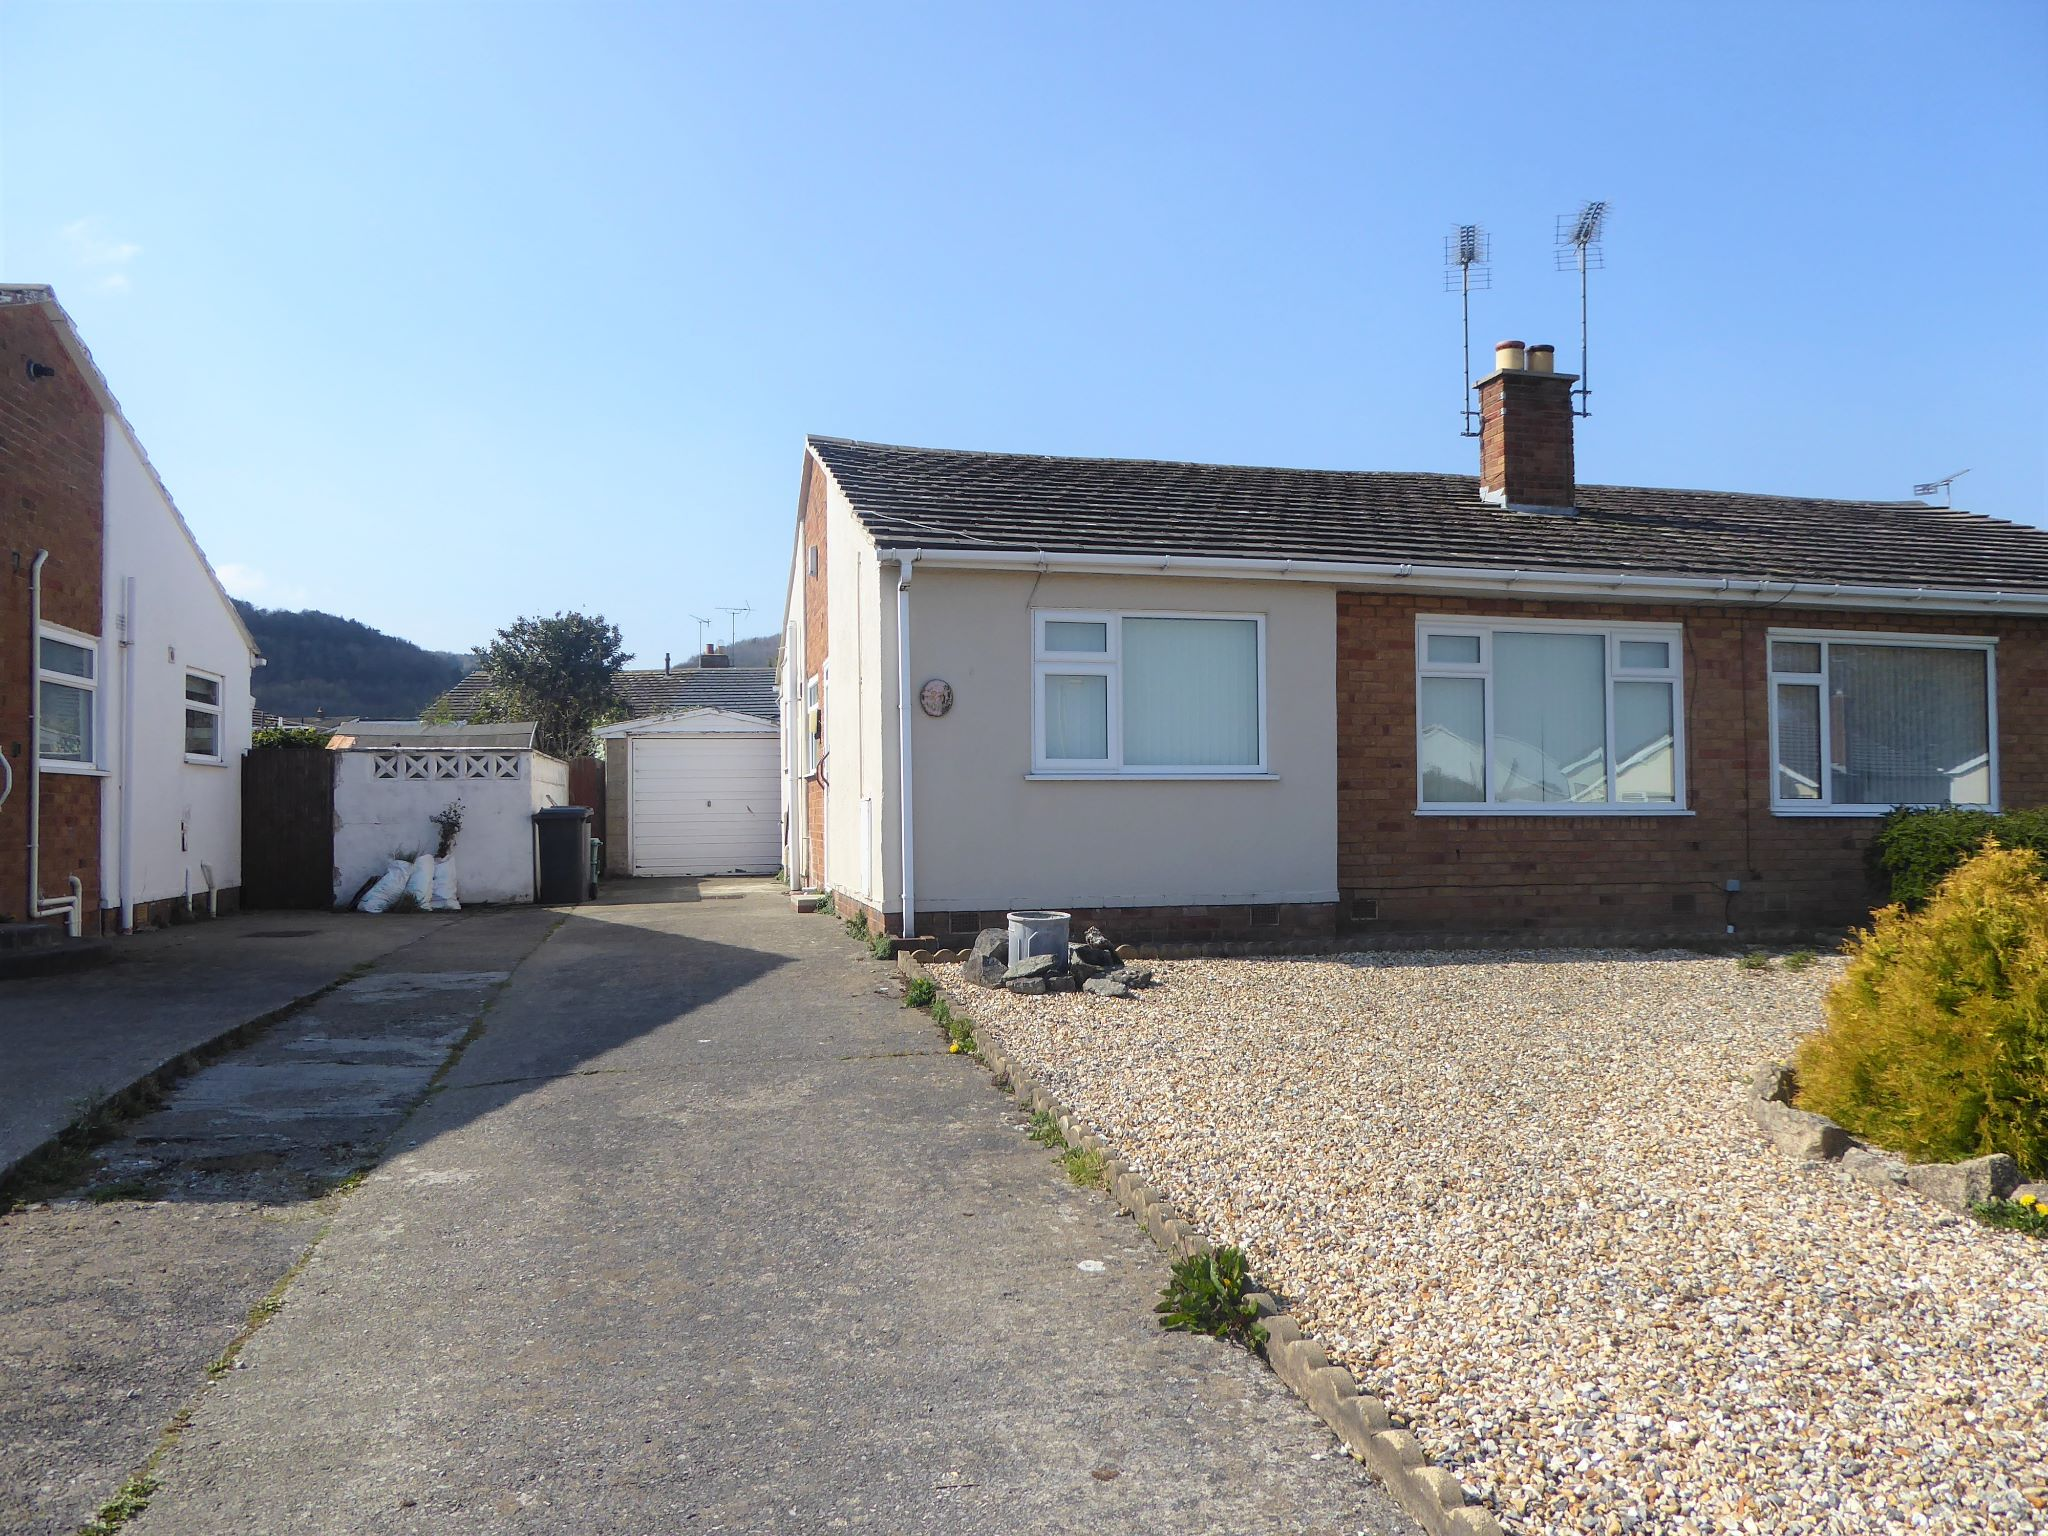 2 bedroom semi-detached bungalow For Sale in Abergele - Photograph 1